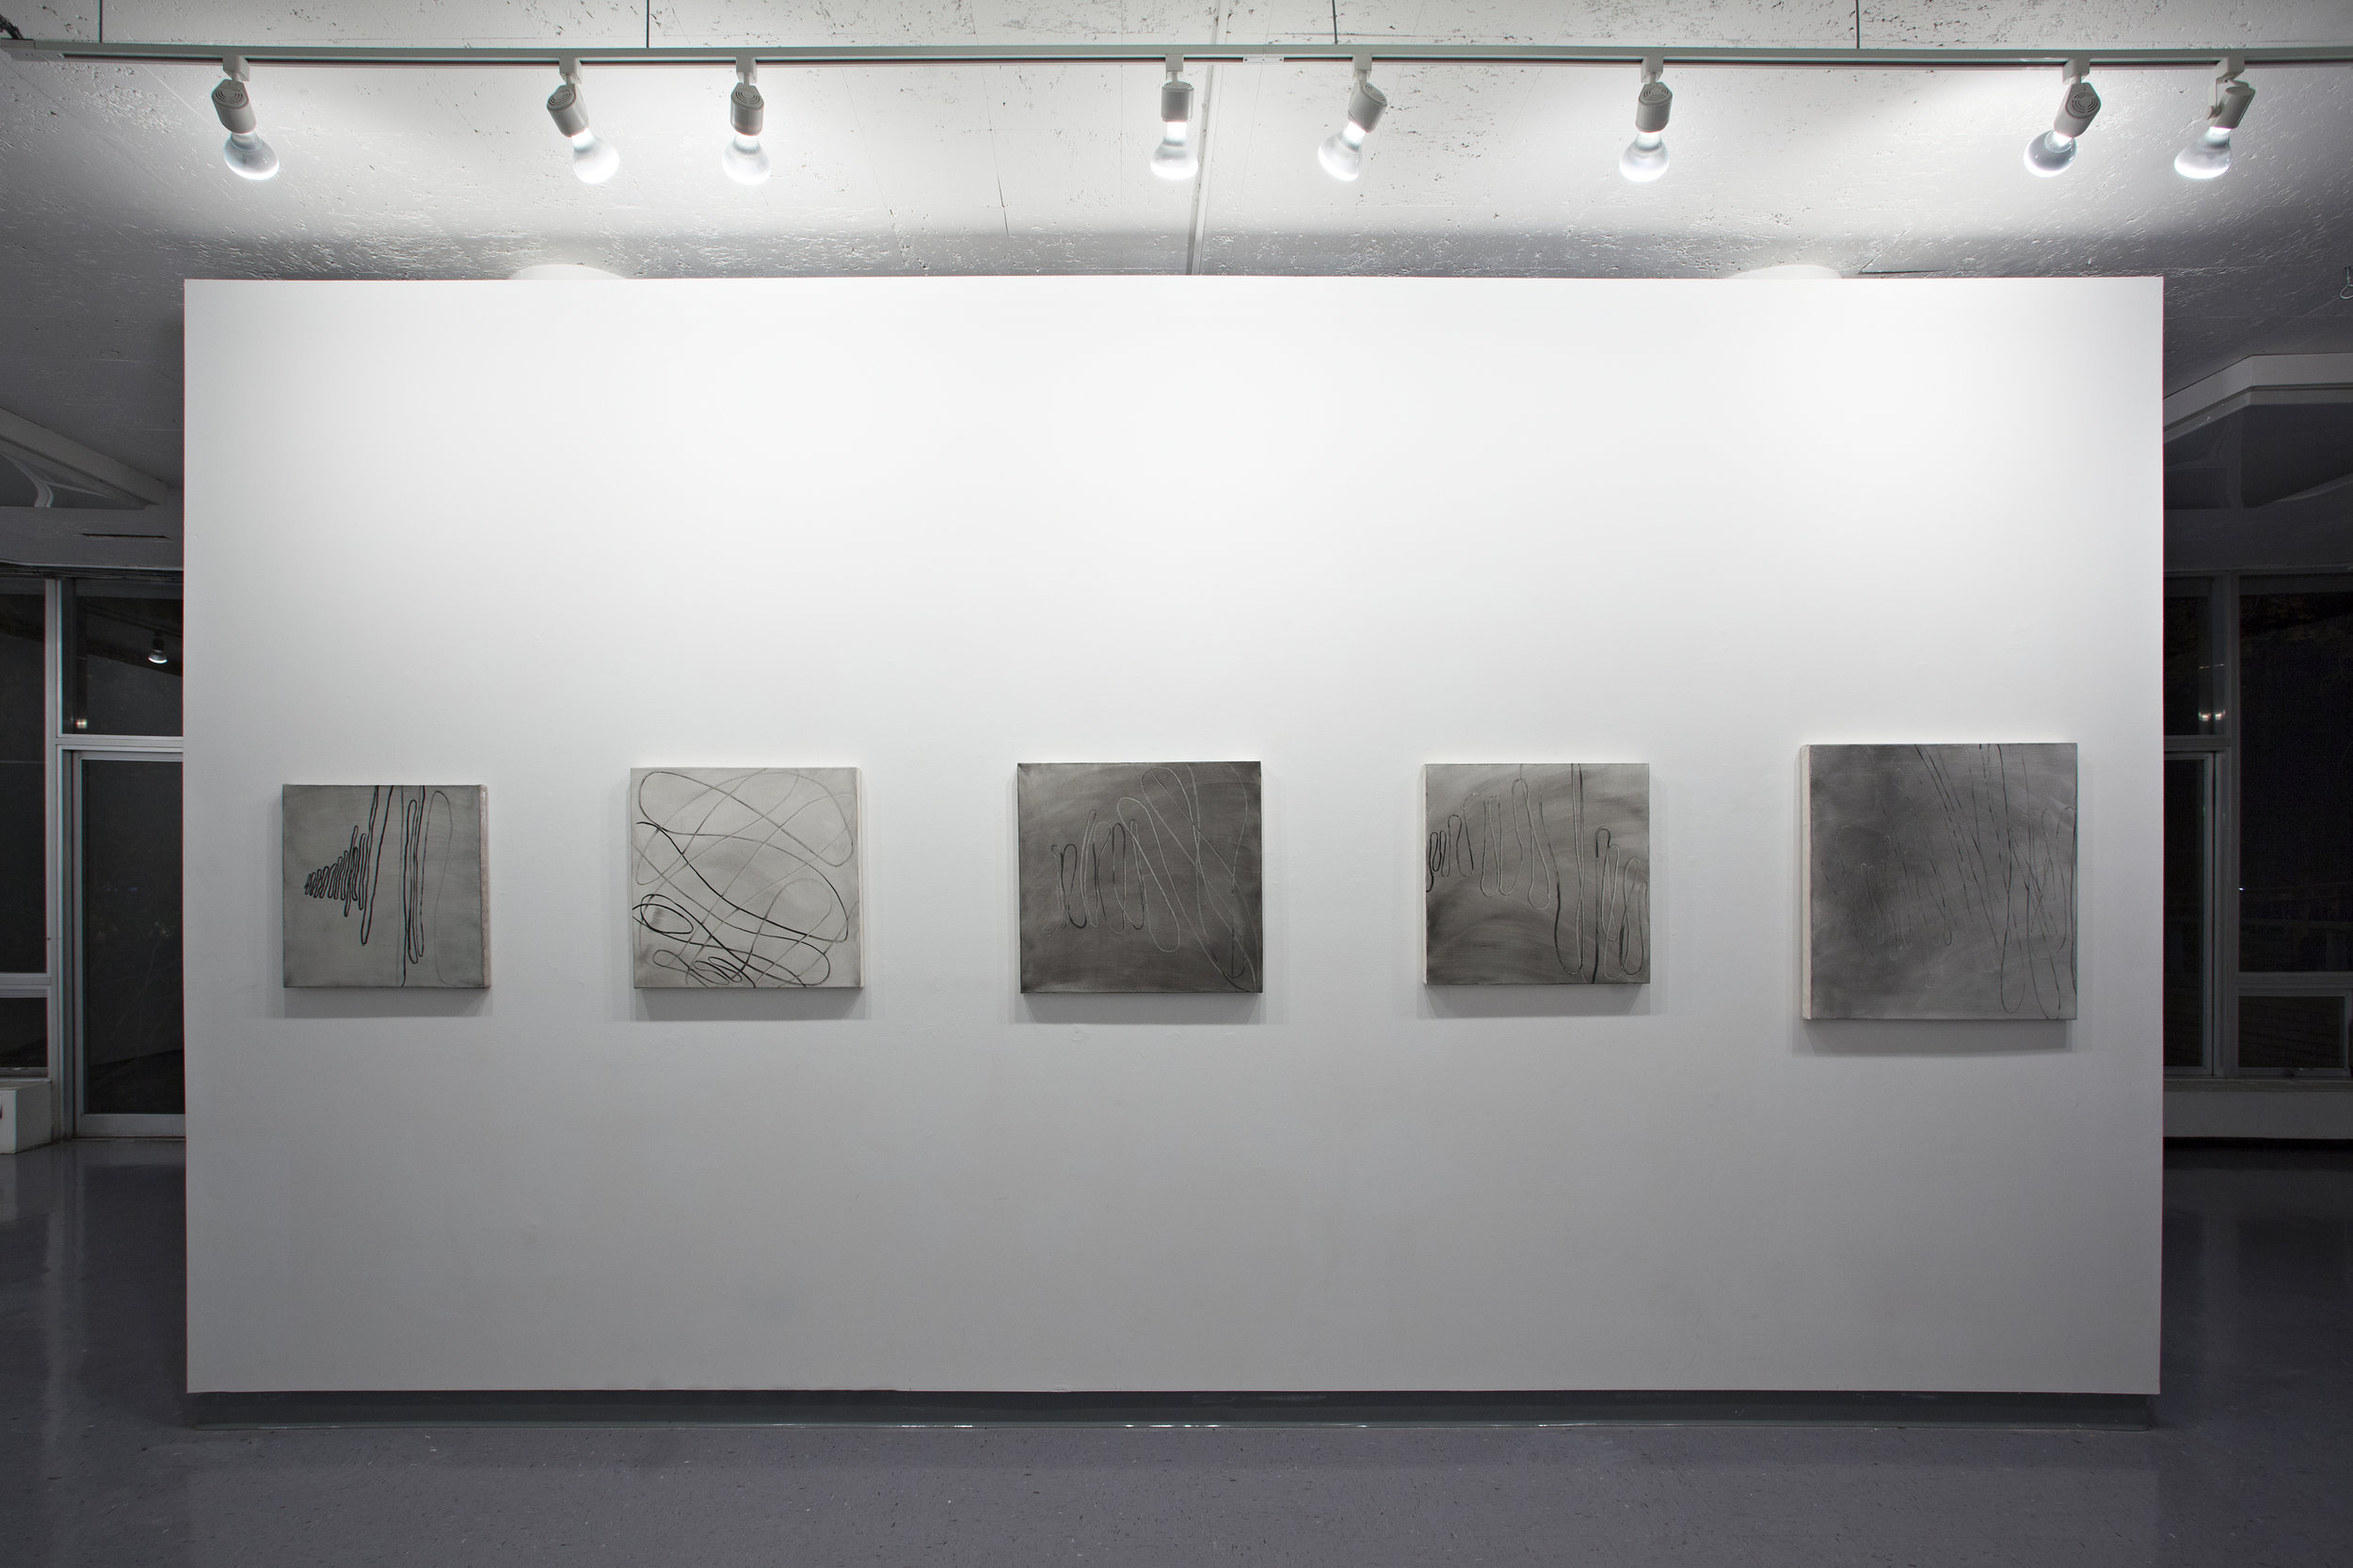 2014, Installation view at Dekalb gallery, Pratt institute, Brooklyn, NY